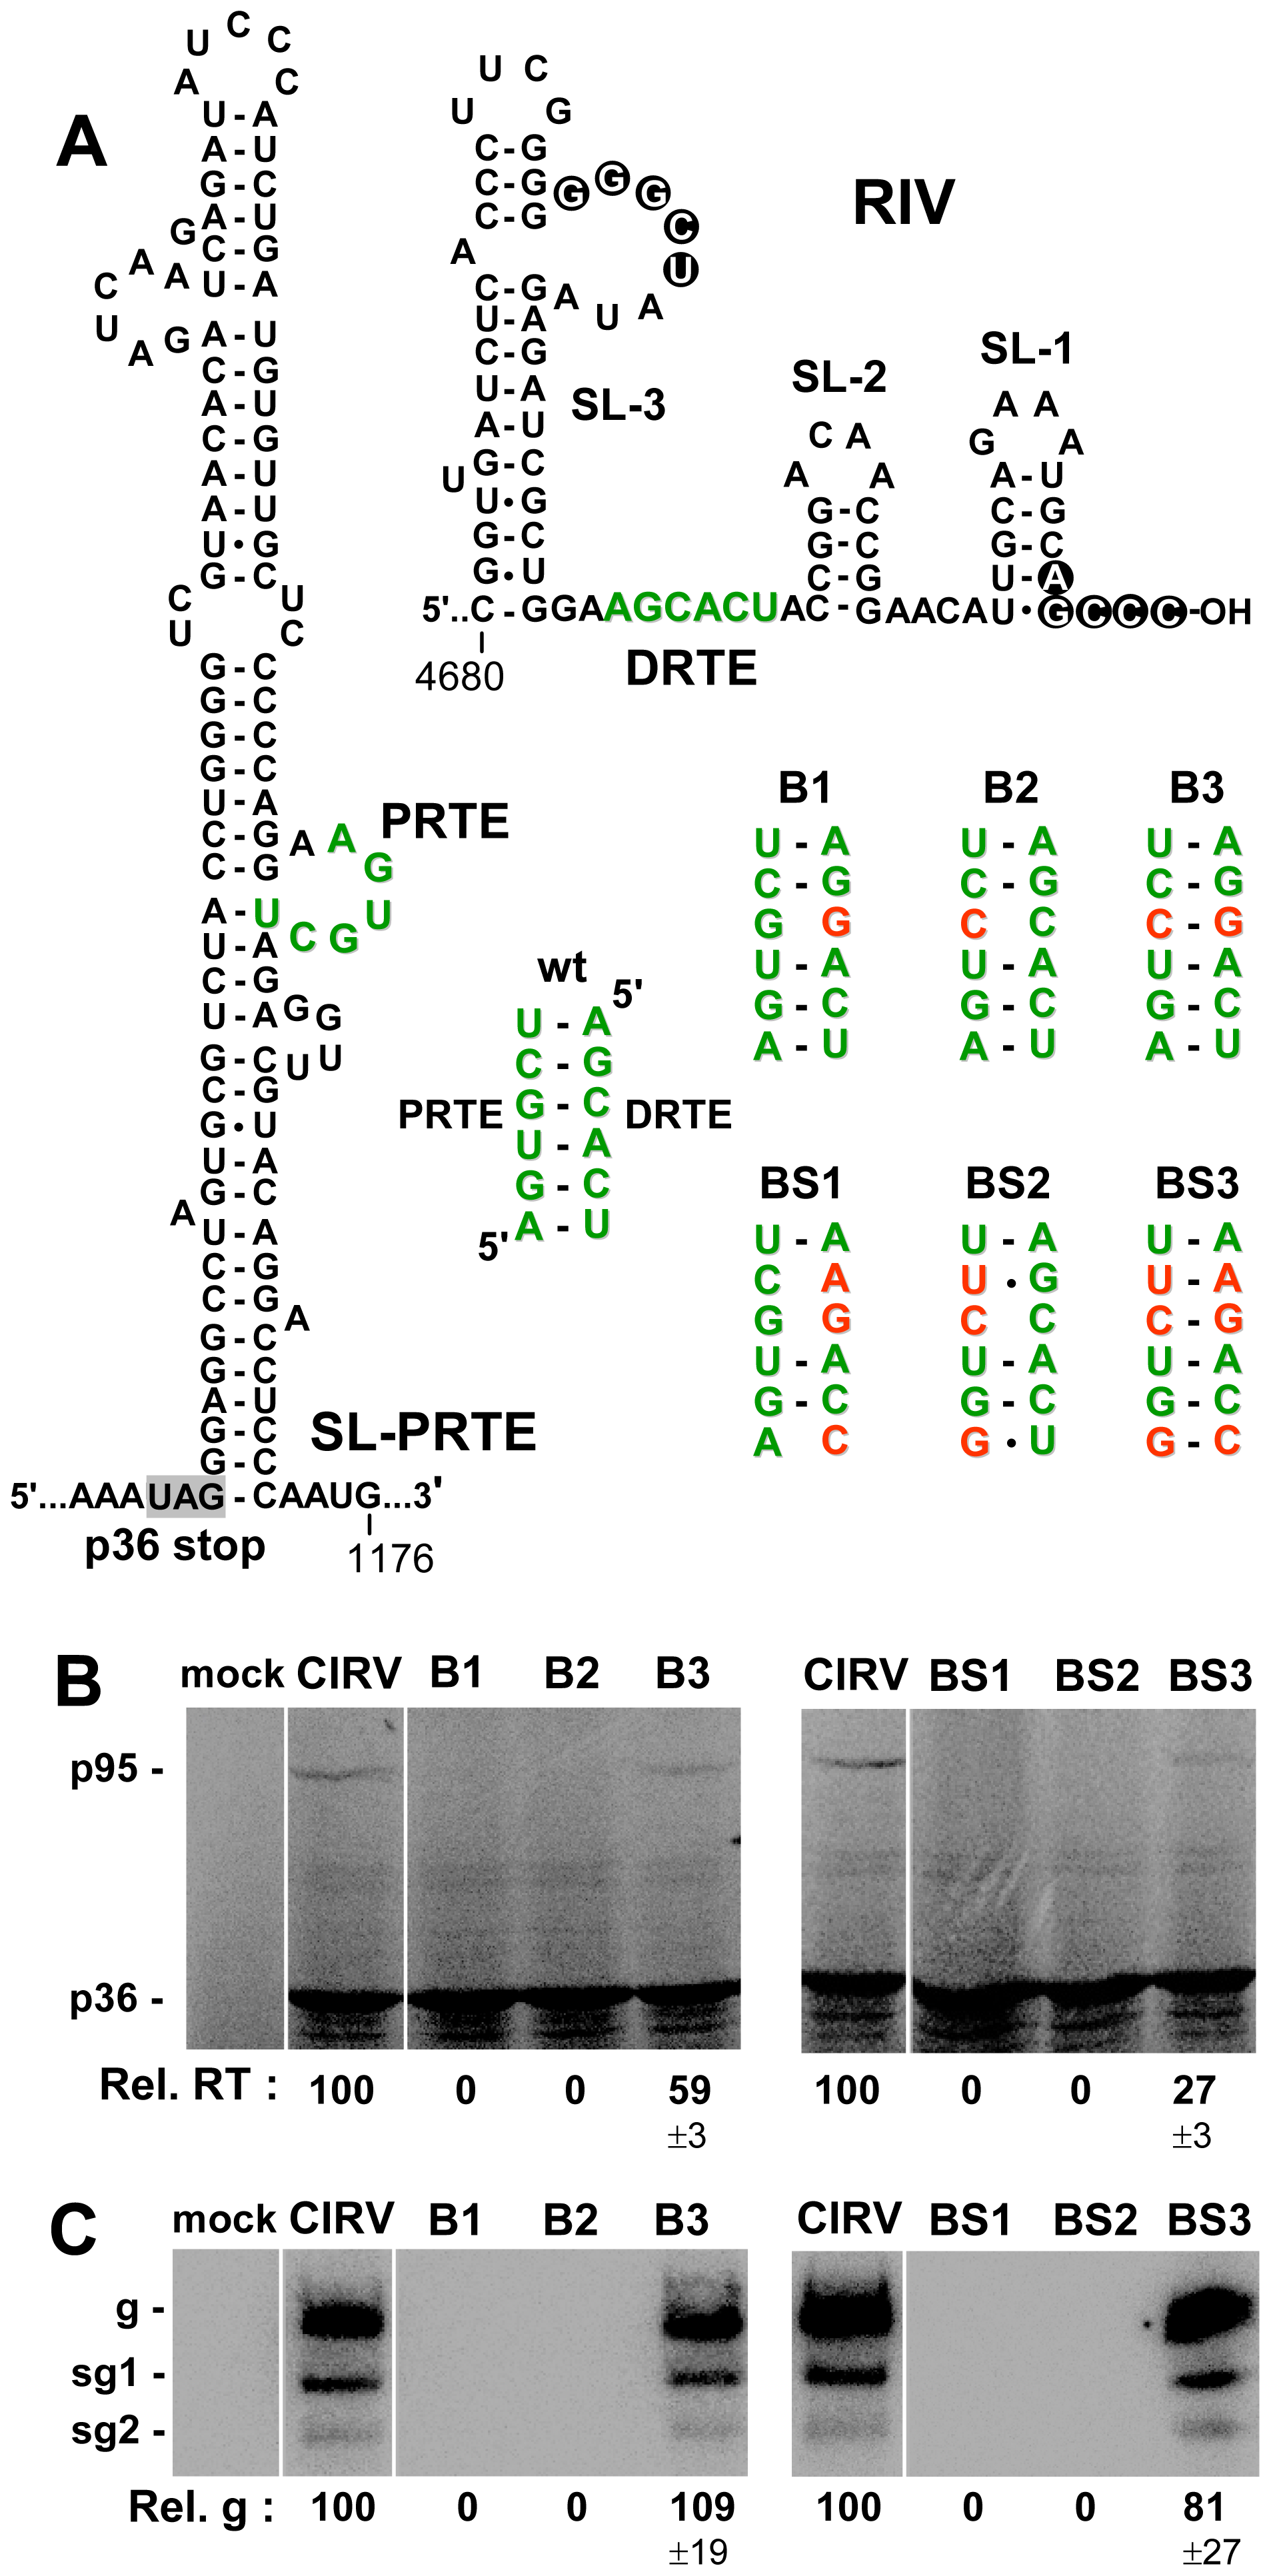 Role of the PRTE-DRTE interaction in mediating RT and genome replication.